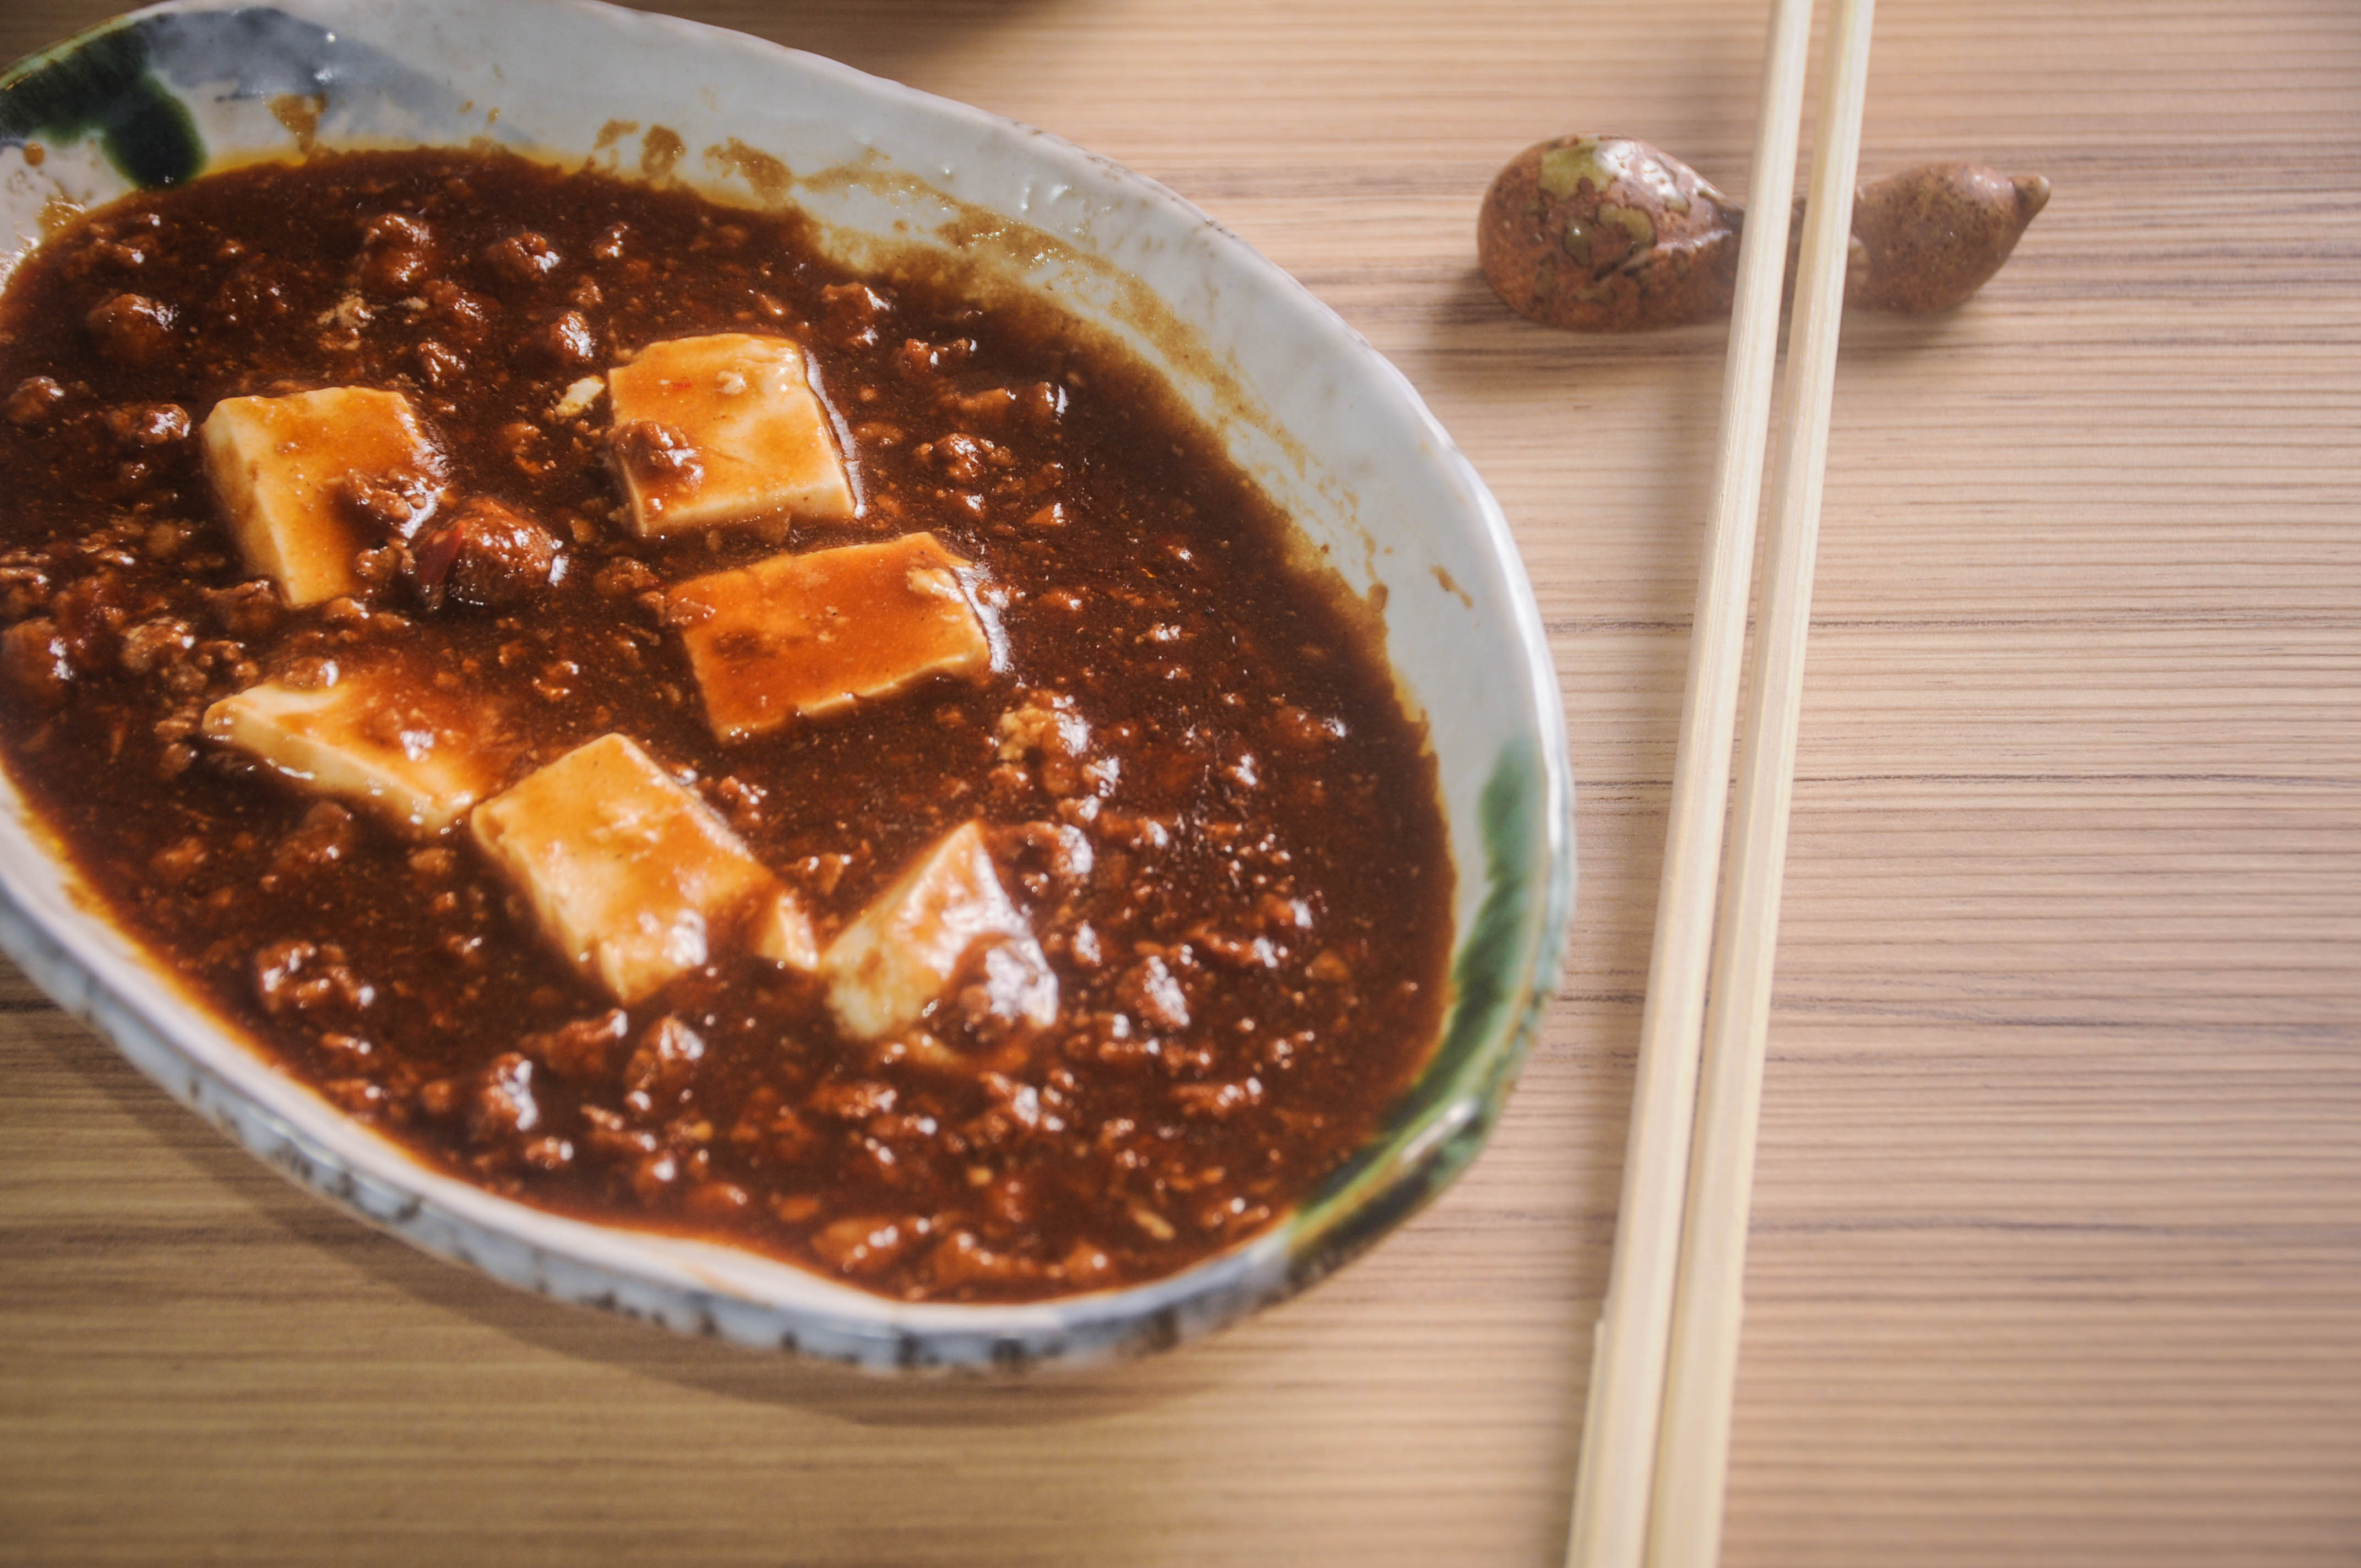 Mabotofu is given a new twist in this yummy concoction